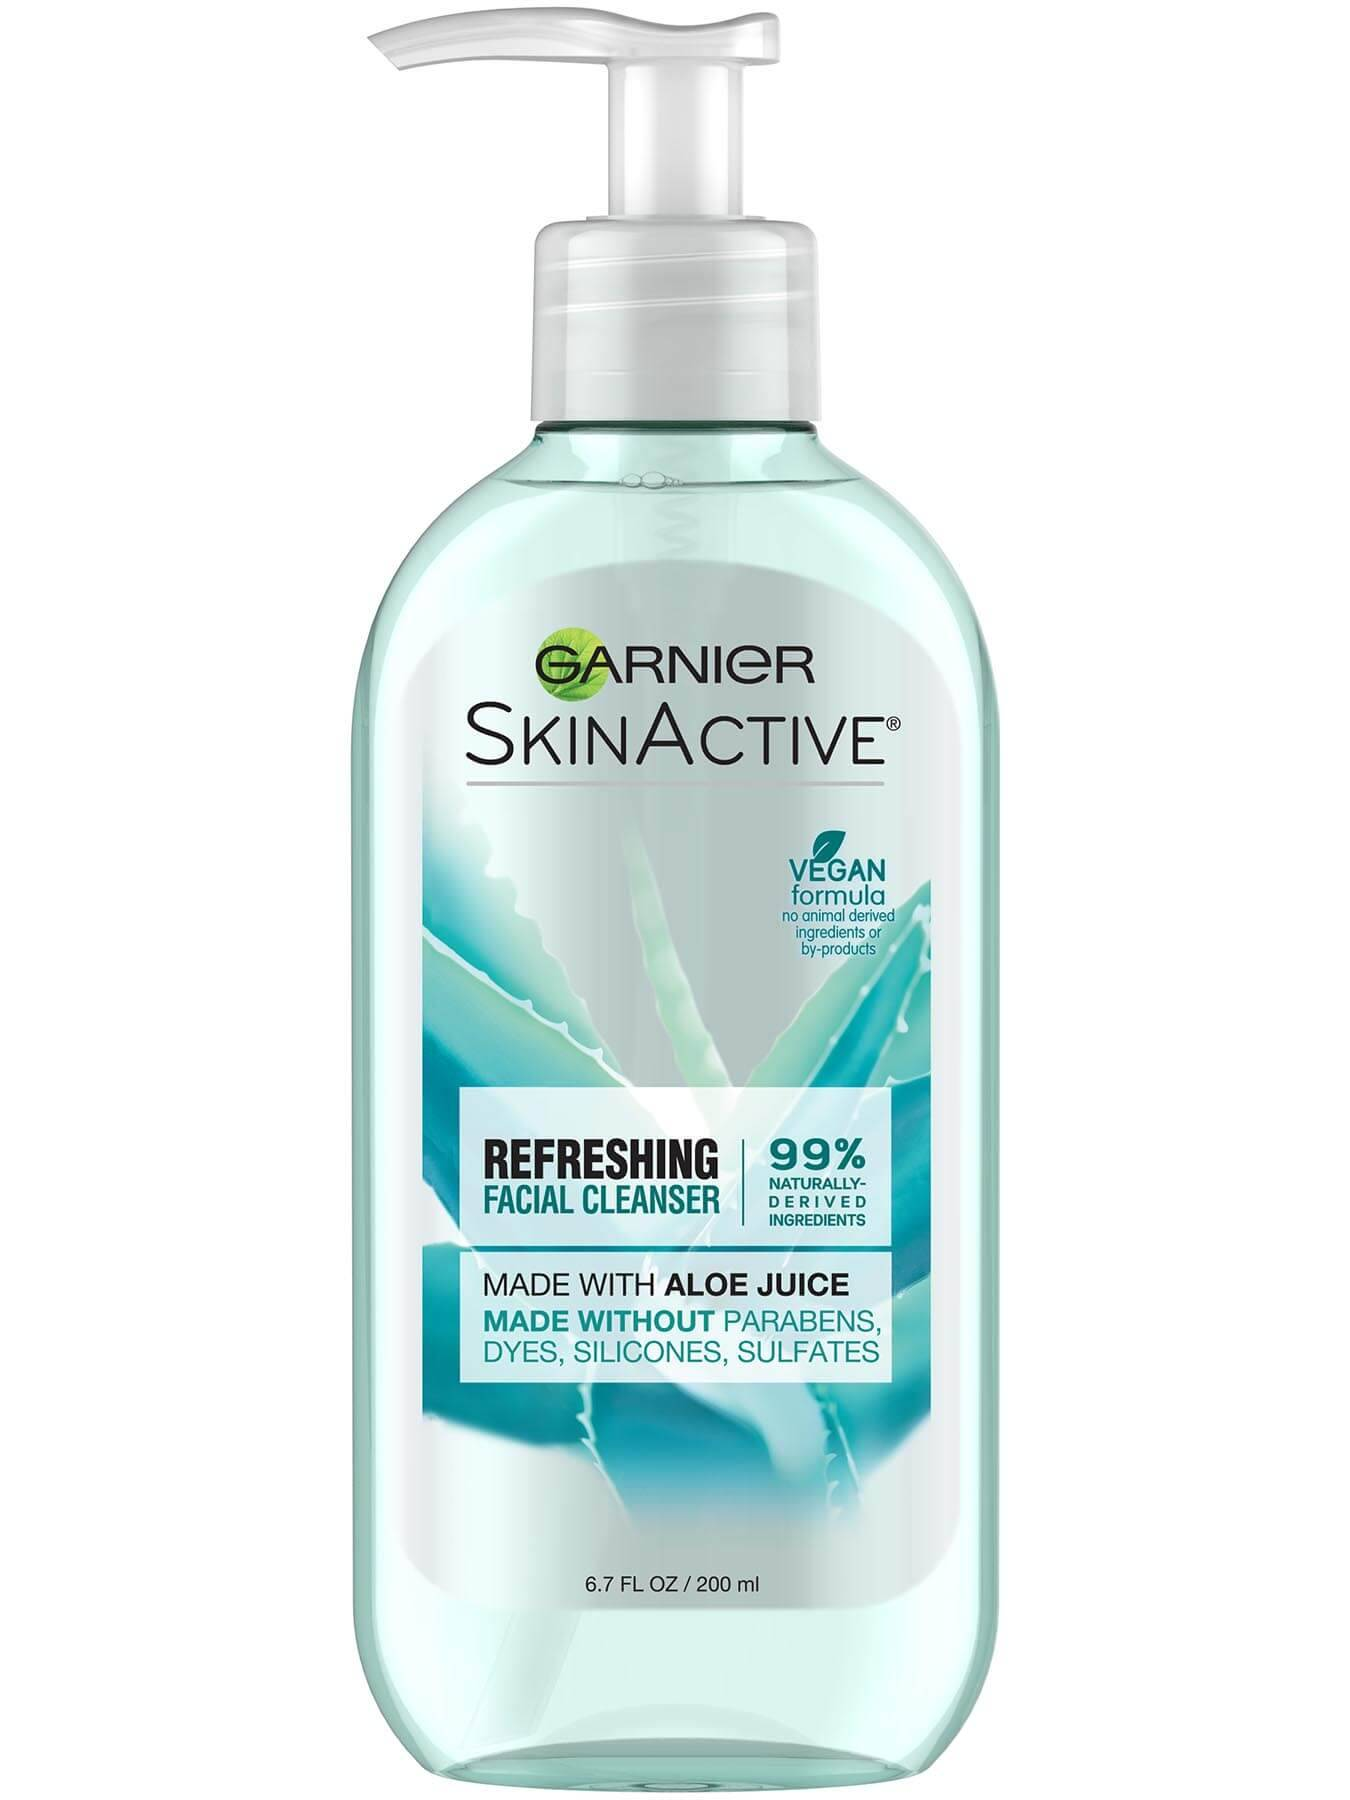 Garnier SkinActive Refreshing Facial Wash with Aloe - Removes excess sebum, impurities, and pollution for clean skin that feels fresh